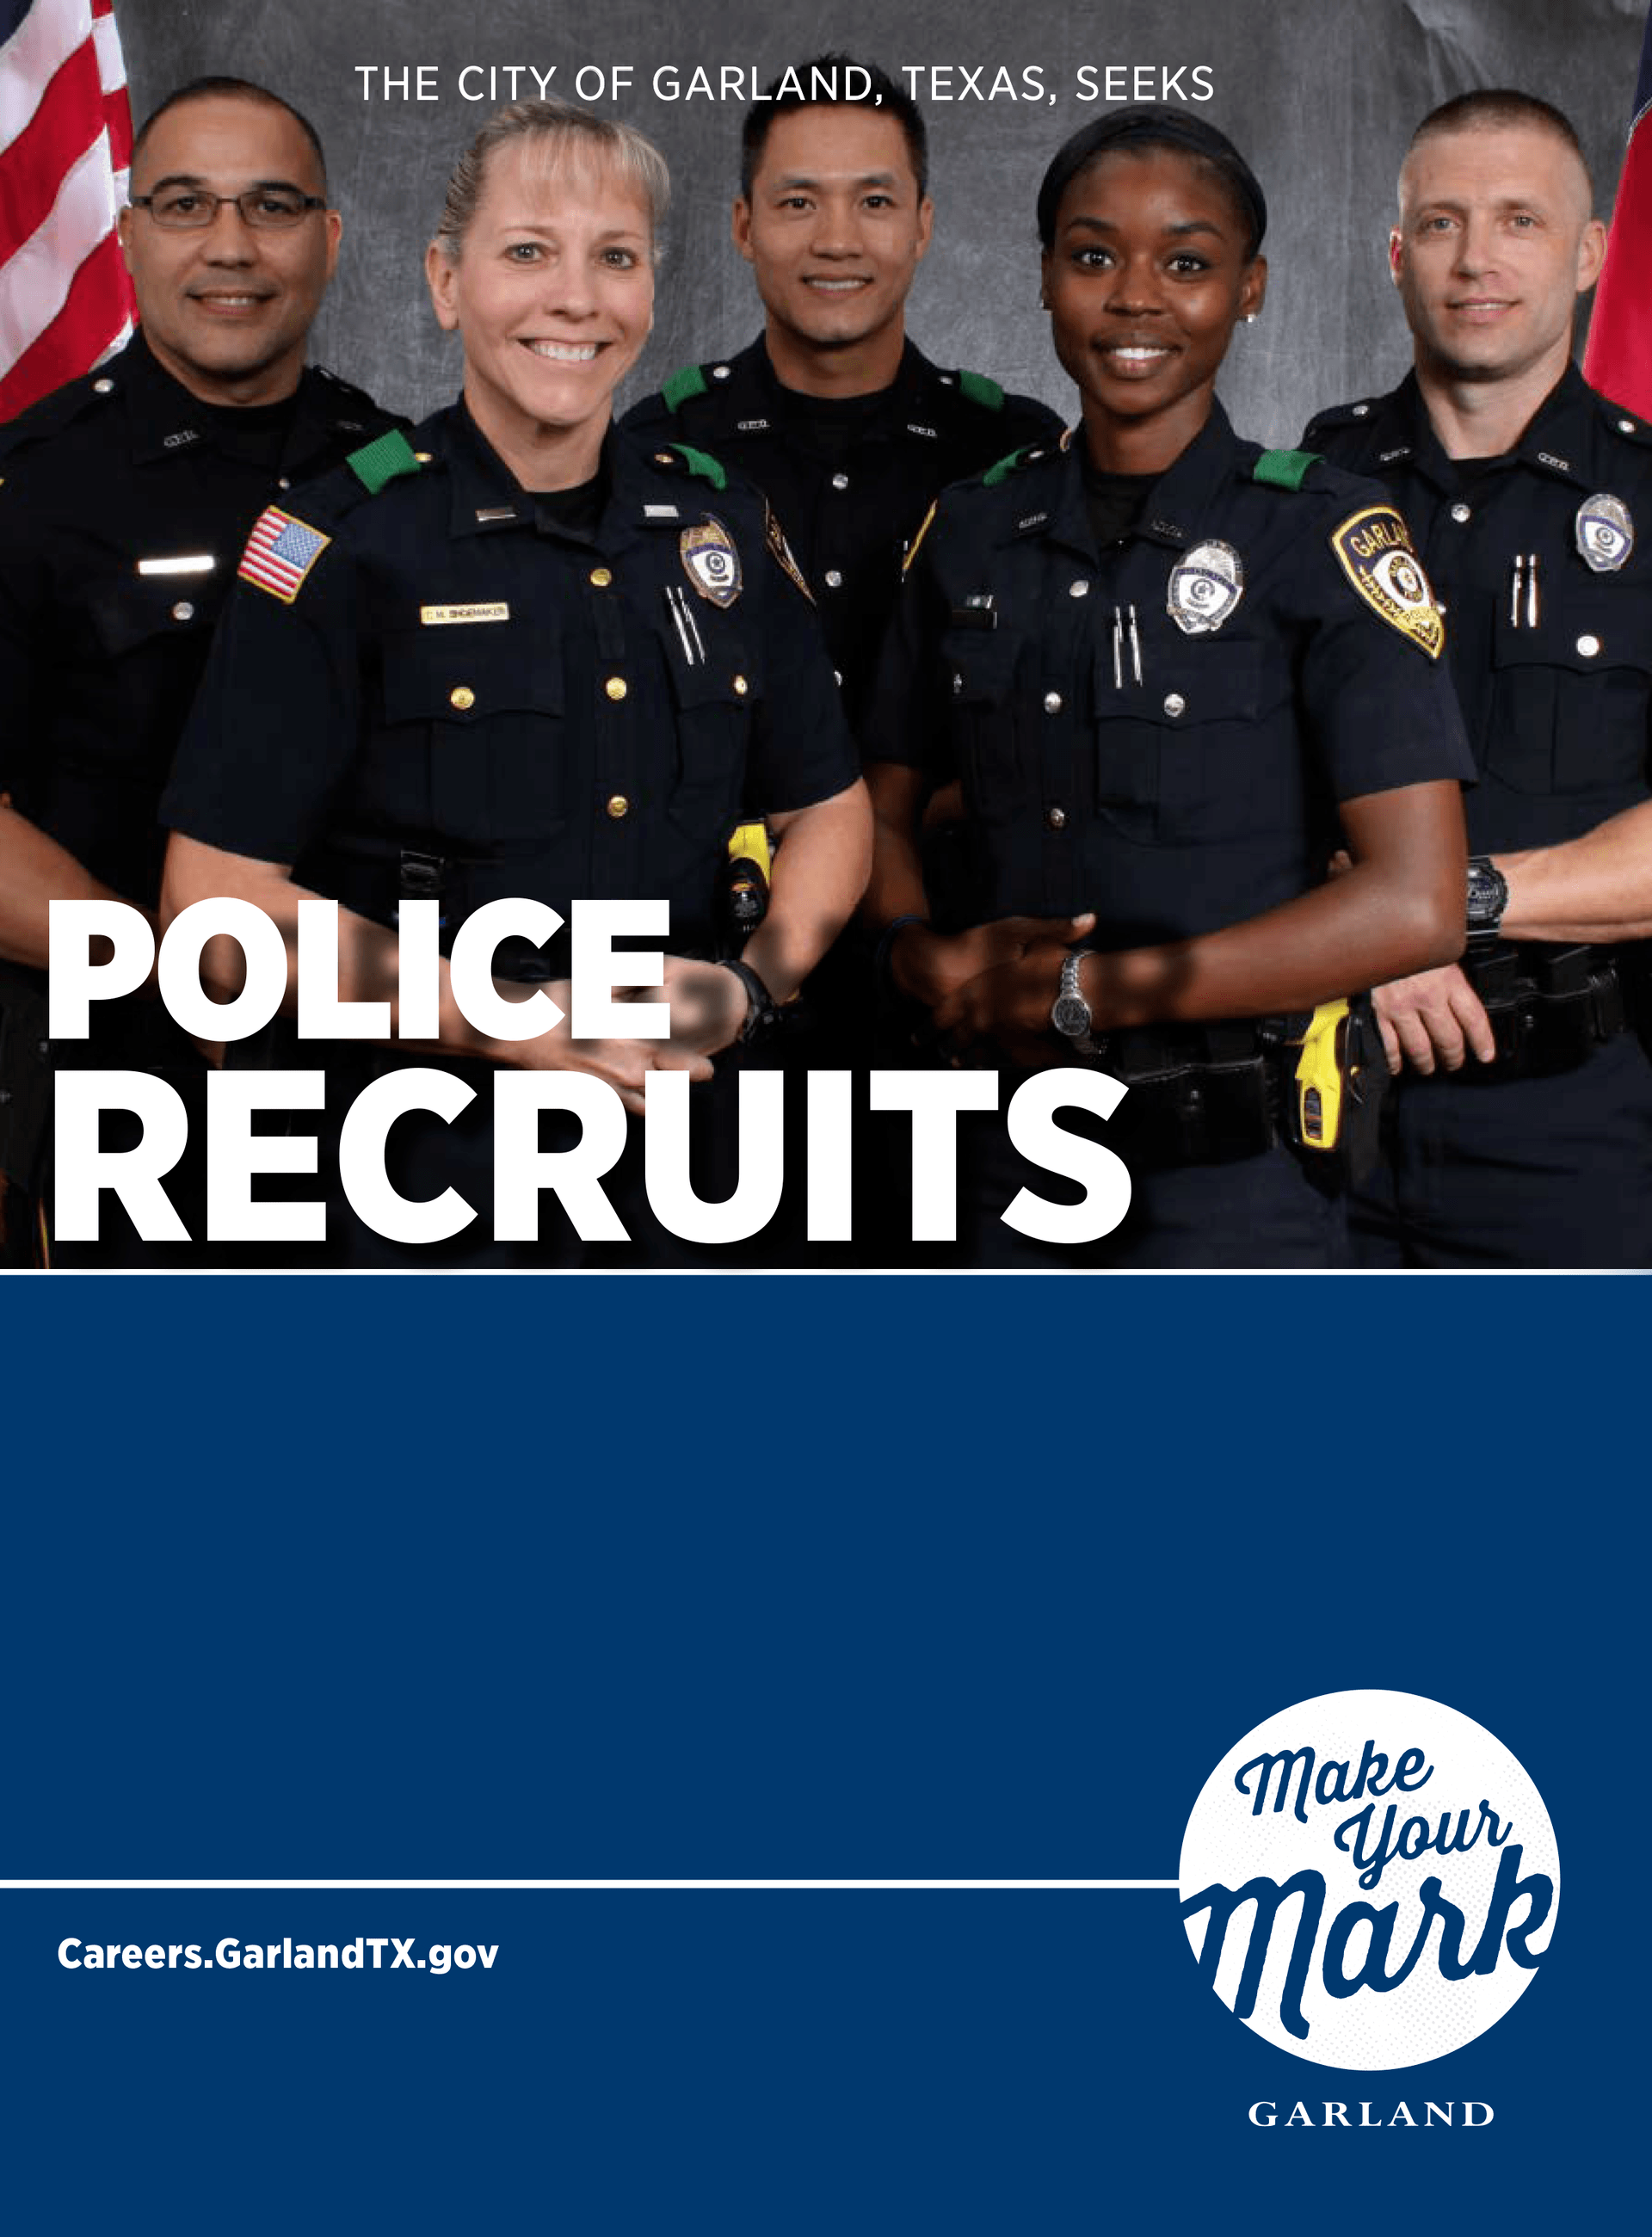 Cover of recruitment brochure that has police officers